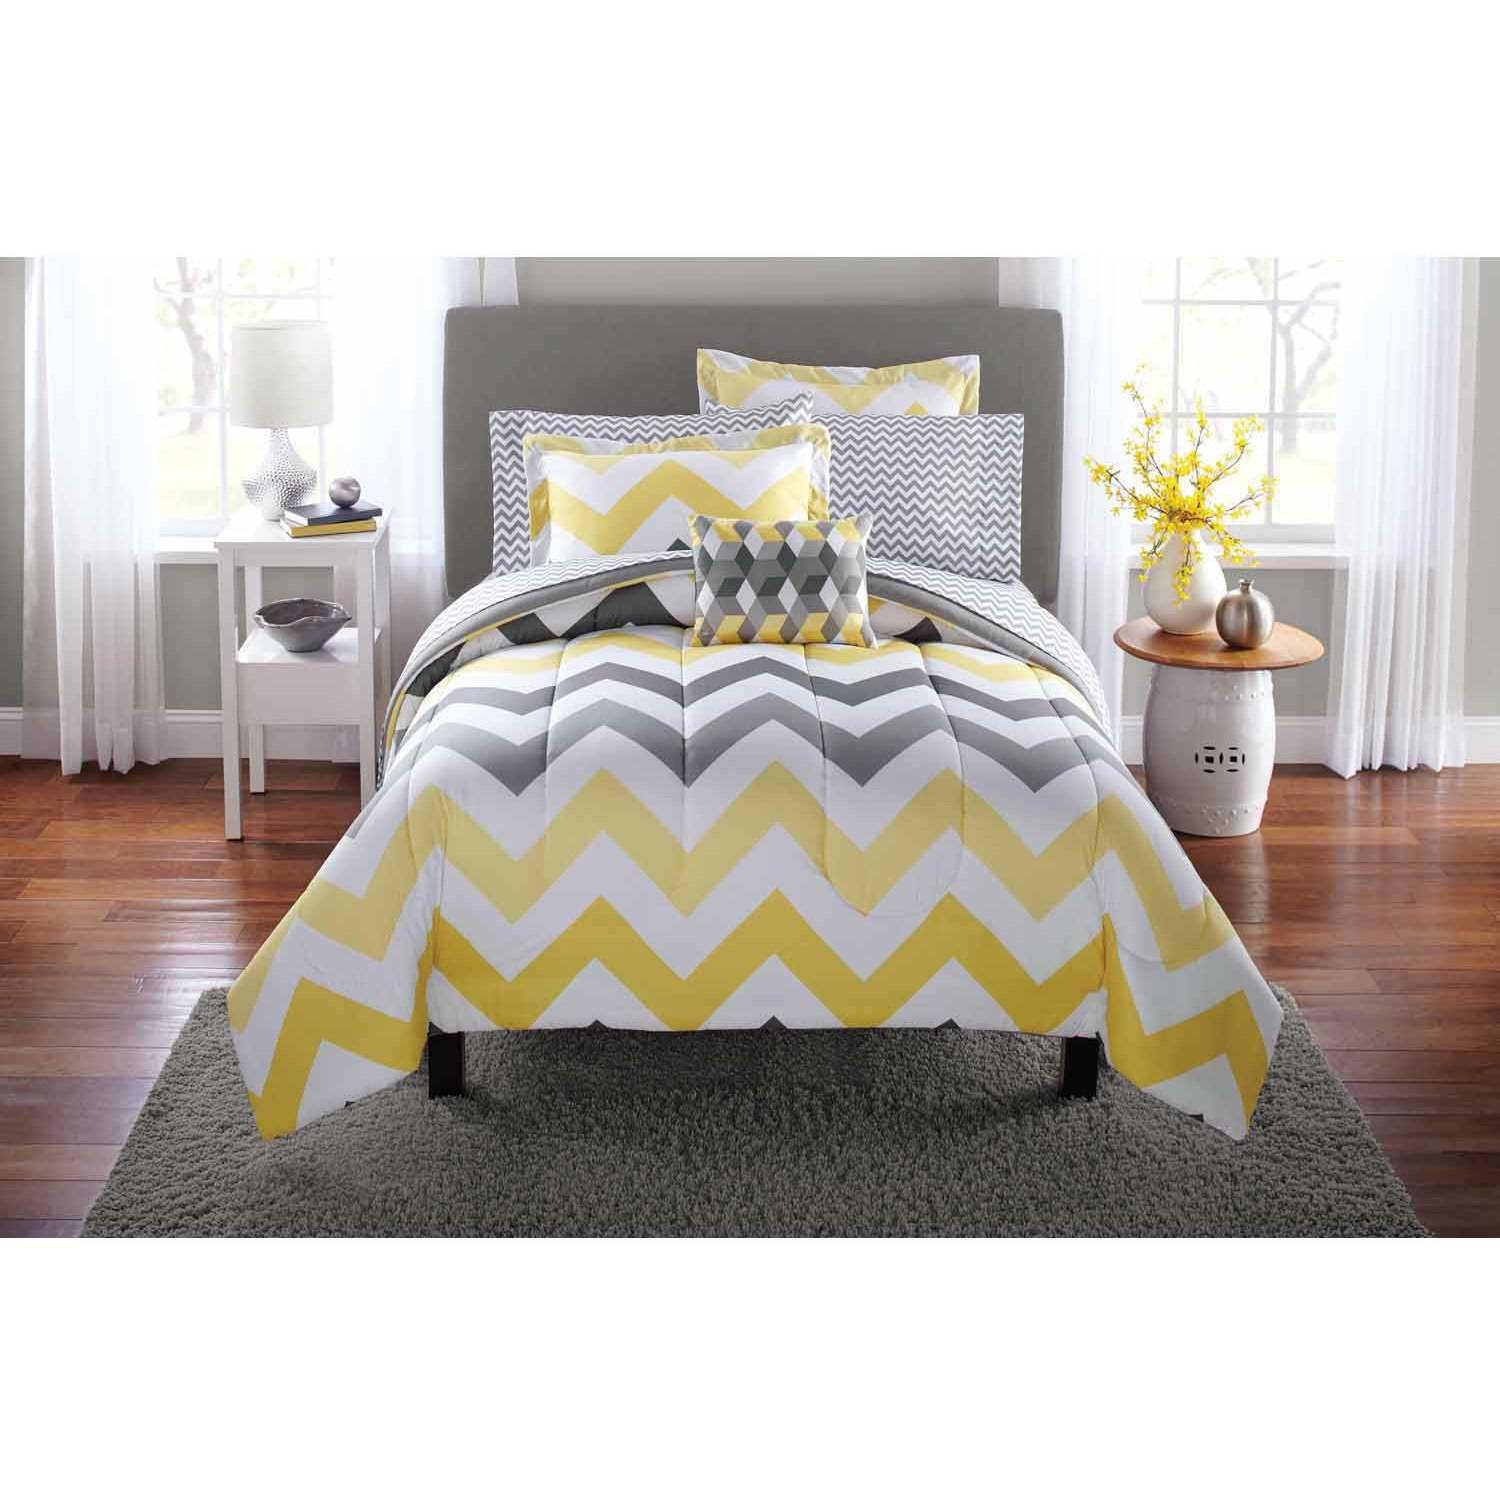 Mainstays Yellow Grey Chevron Bed In A Bag Bedding Comforter Set    Walmart.com